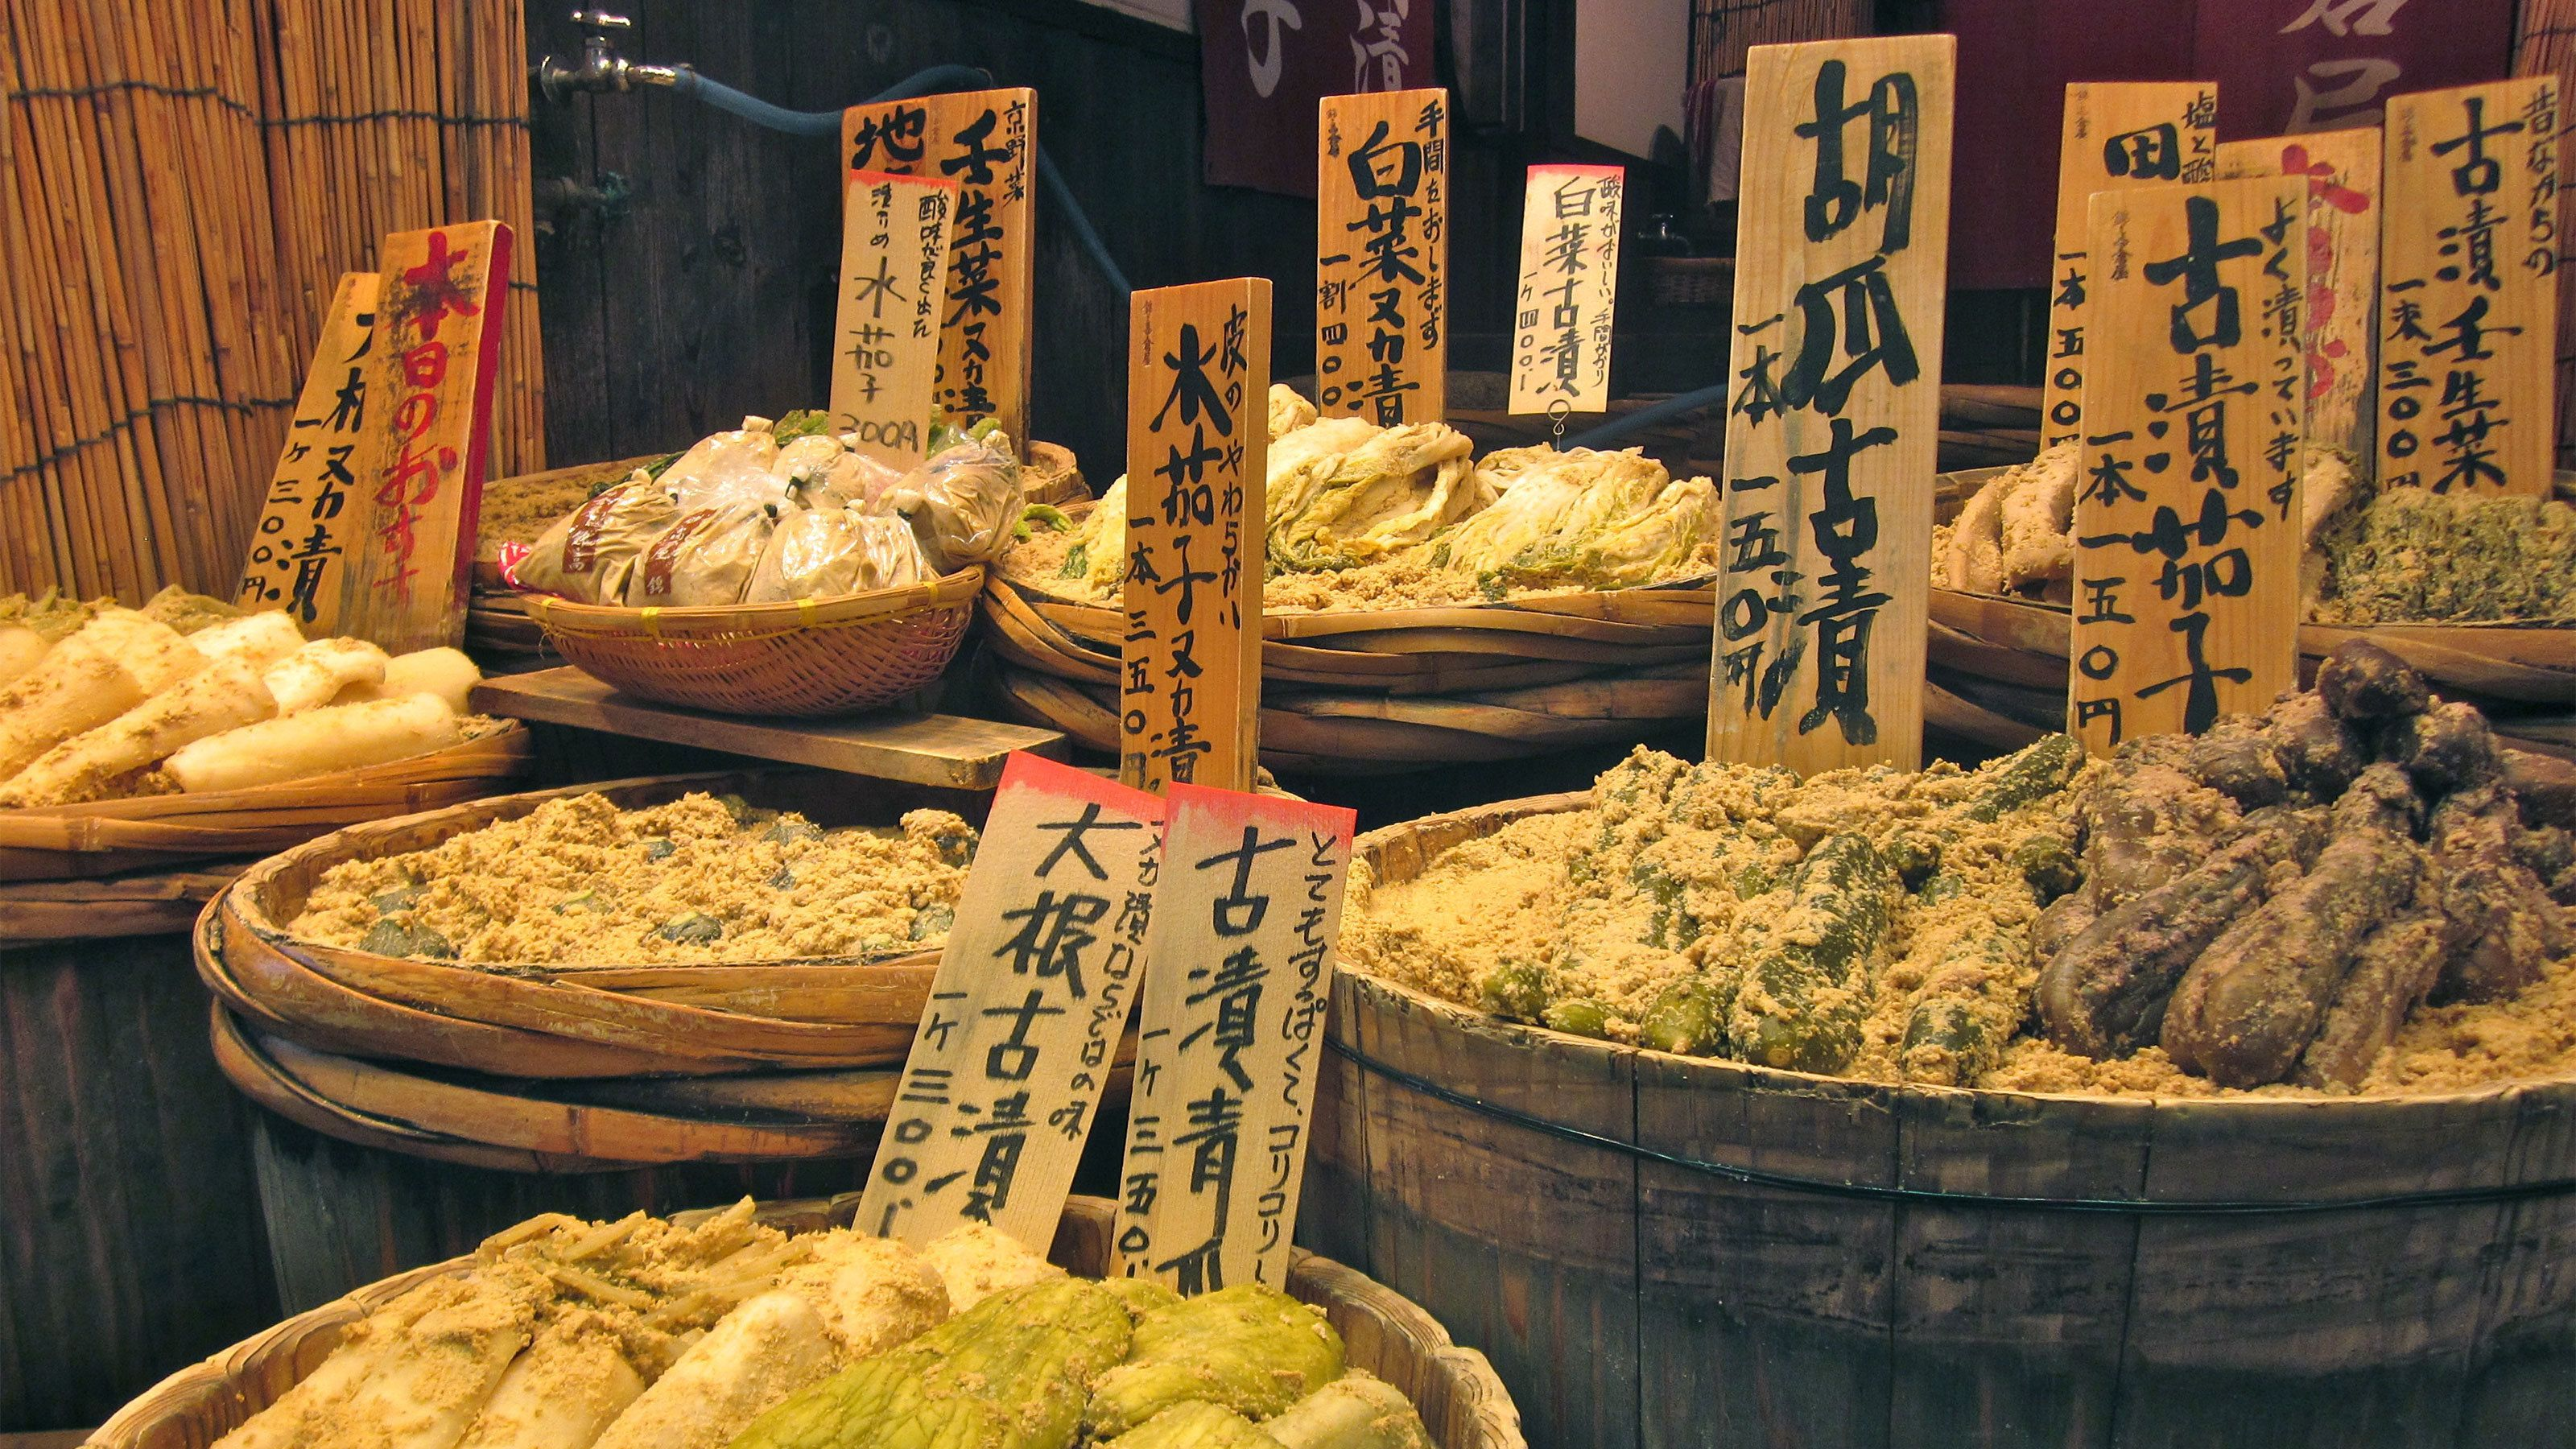 Foods for sale in Kyoto